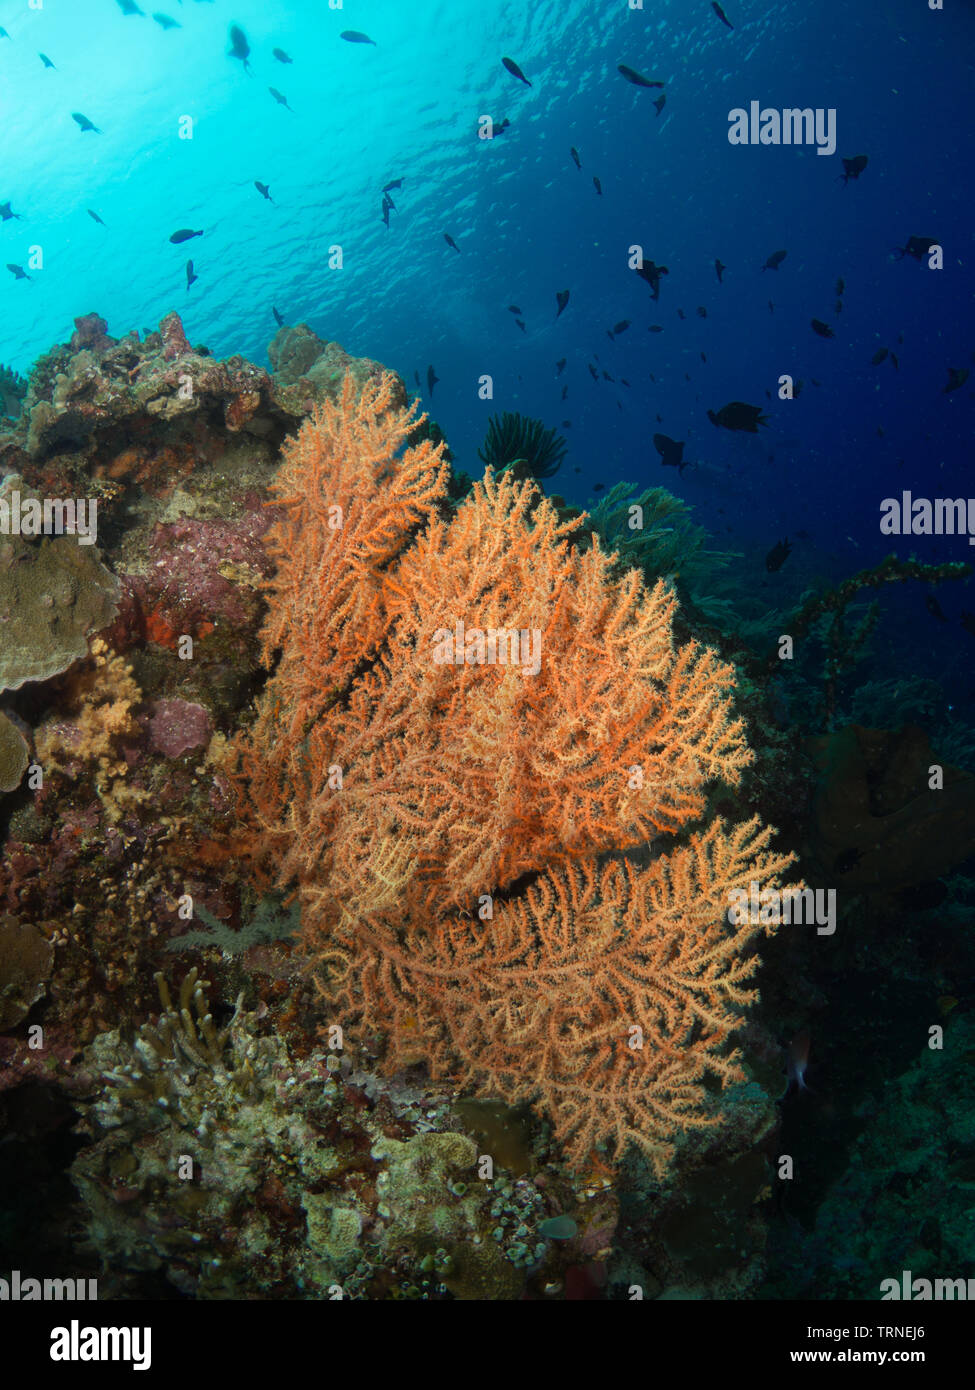 Colorful soft coral reef underwater in Bunaken Marine Park, North Sulawesi, Indonesia - Stock Image